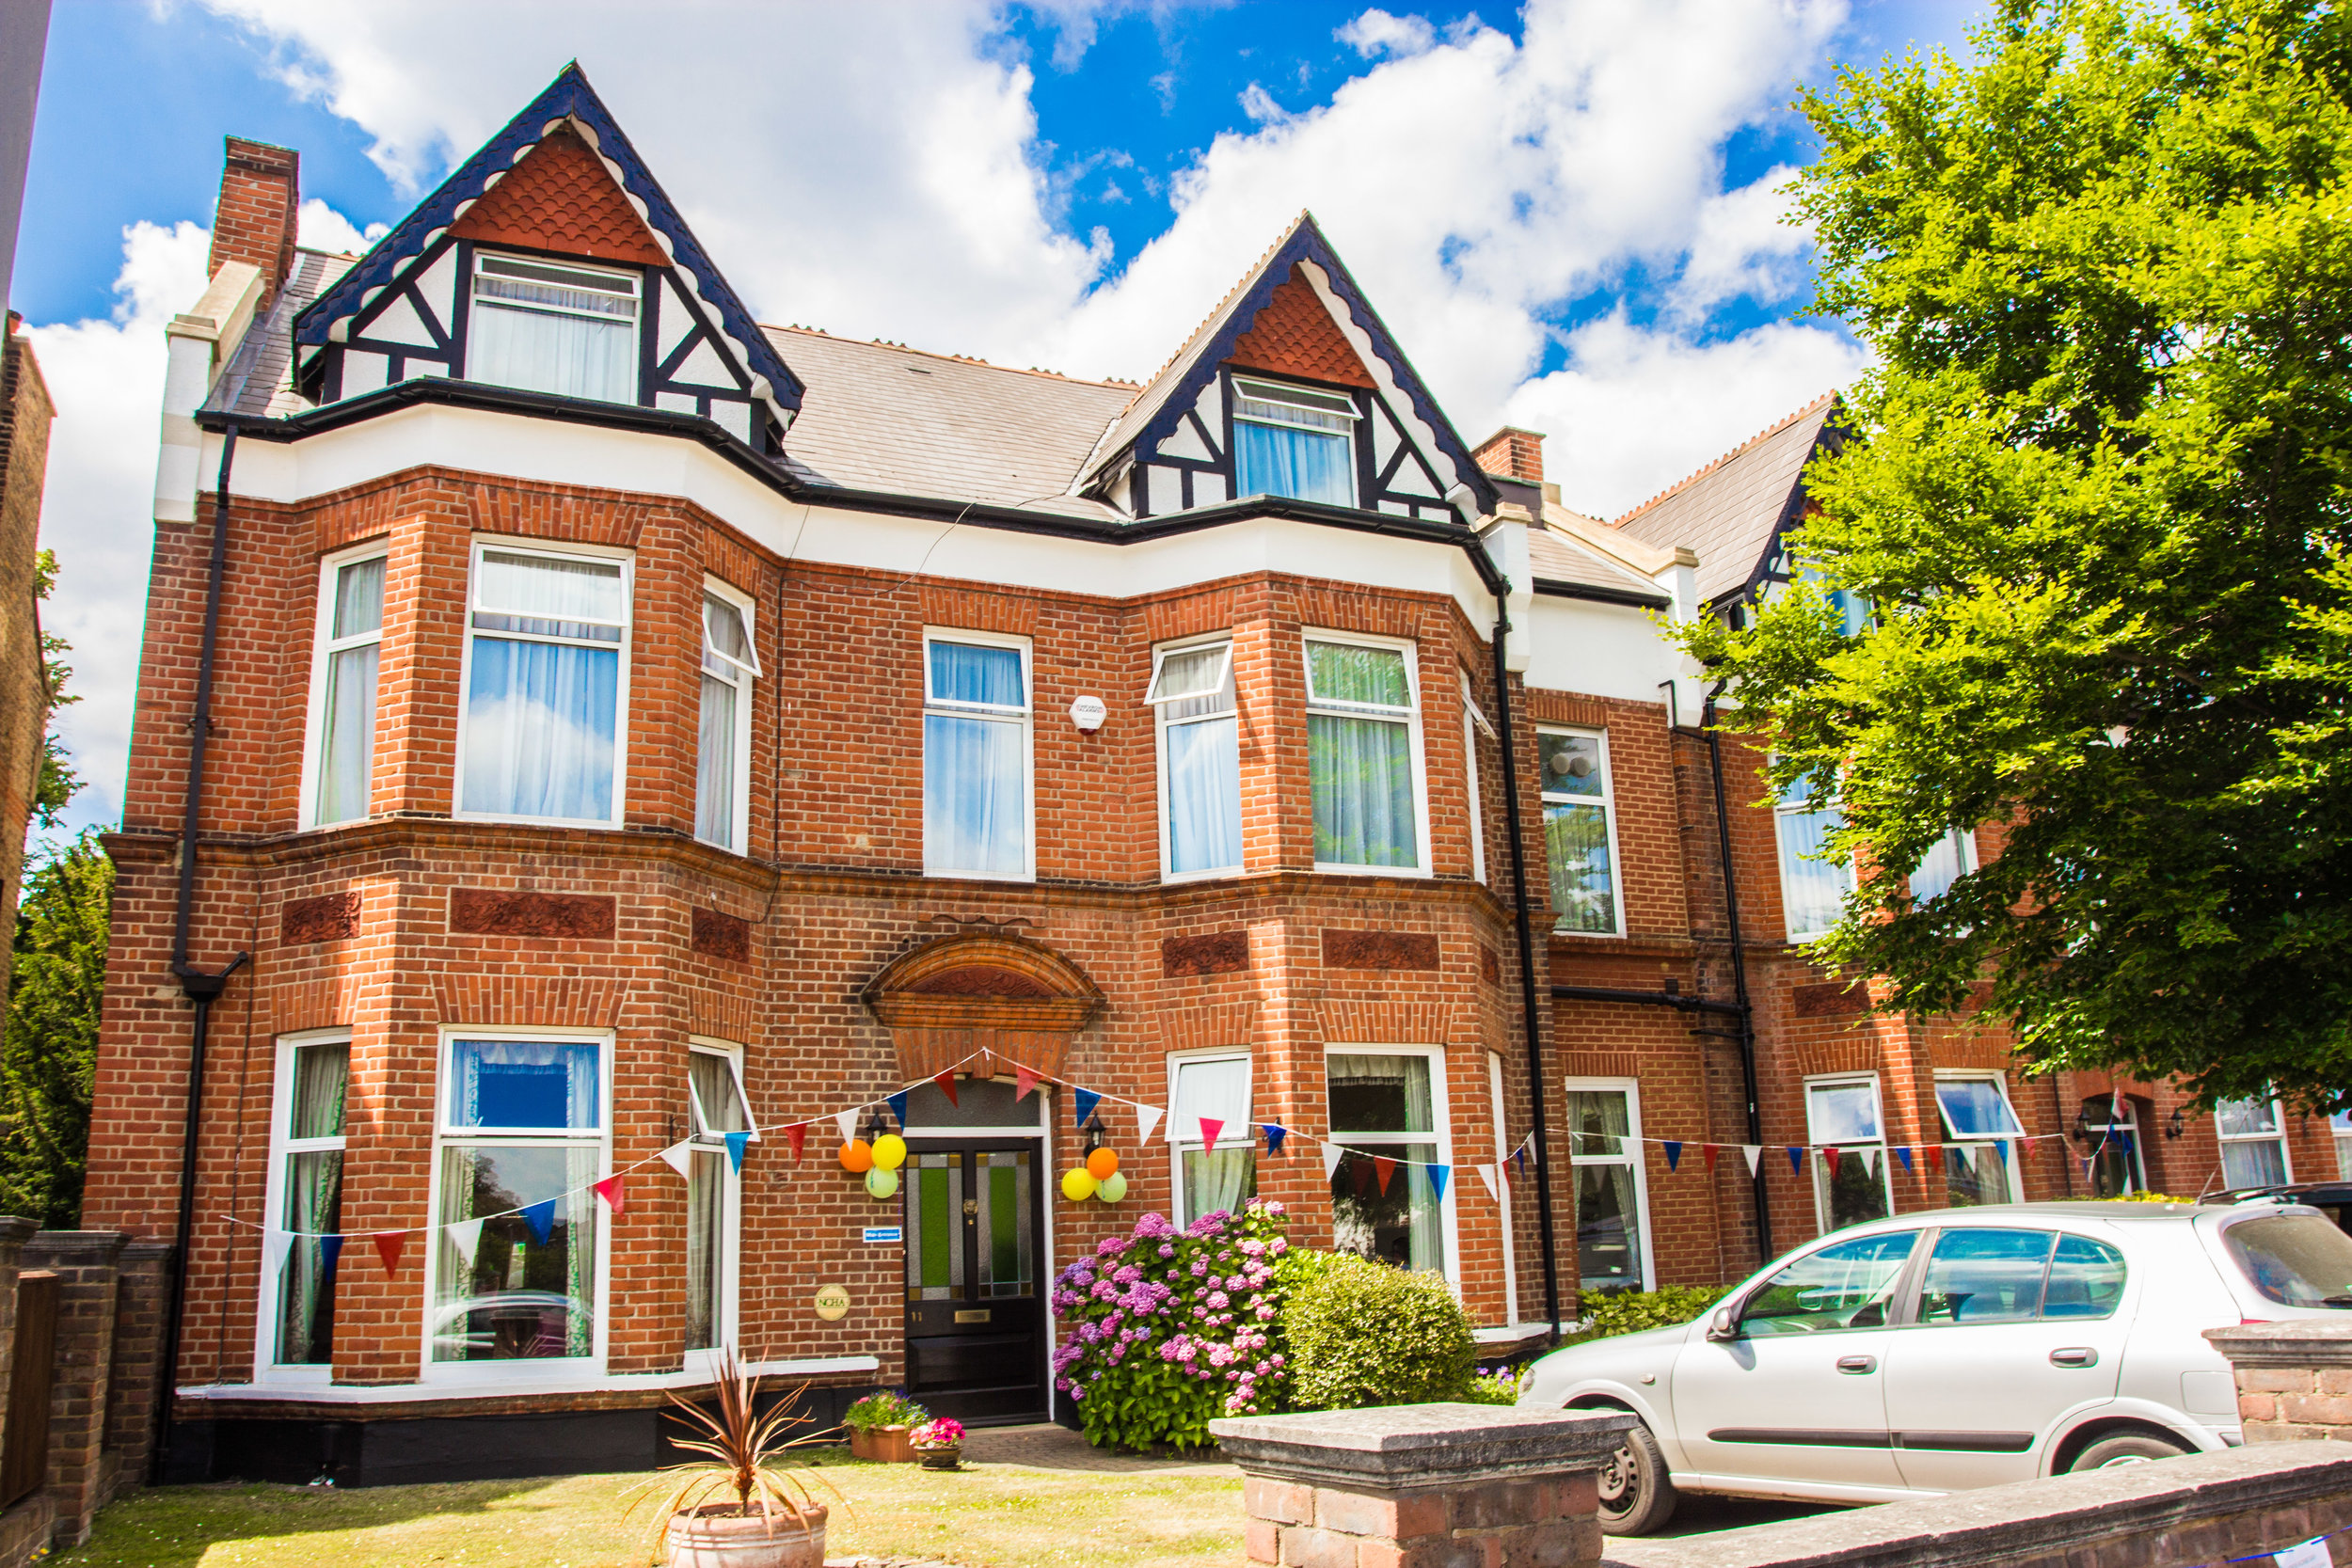 Surbiton Care Home - 0208 390 7712A beautiful Victorian property conveniently located within walking distance of Surbiton town centre, where we welcome people requiring residential care